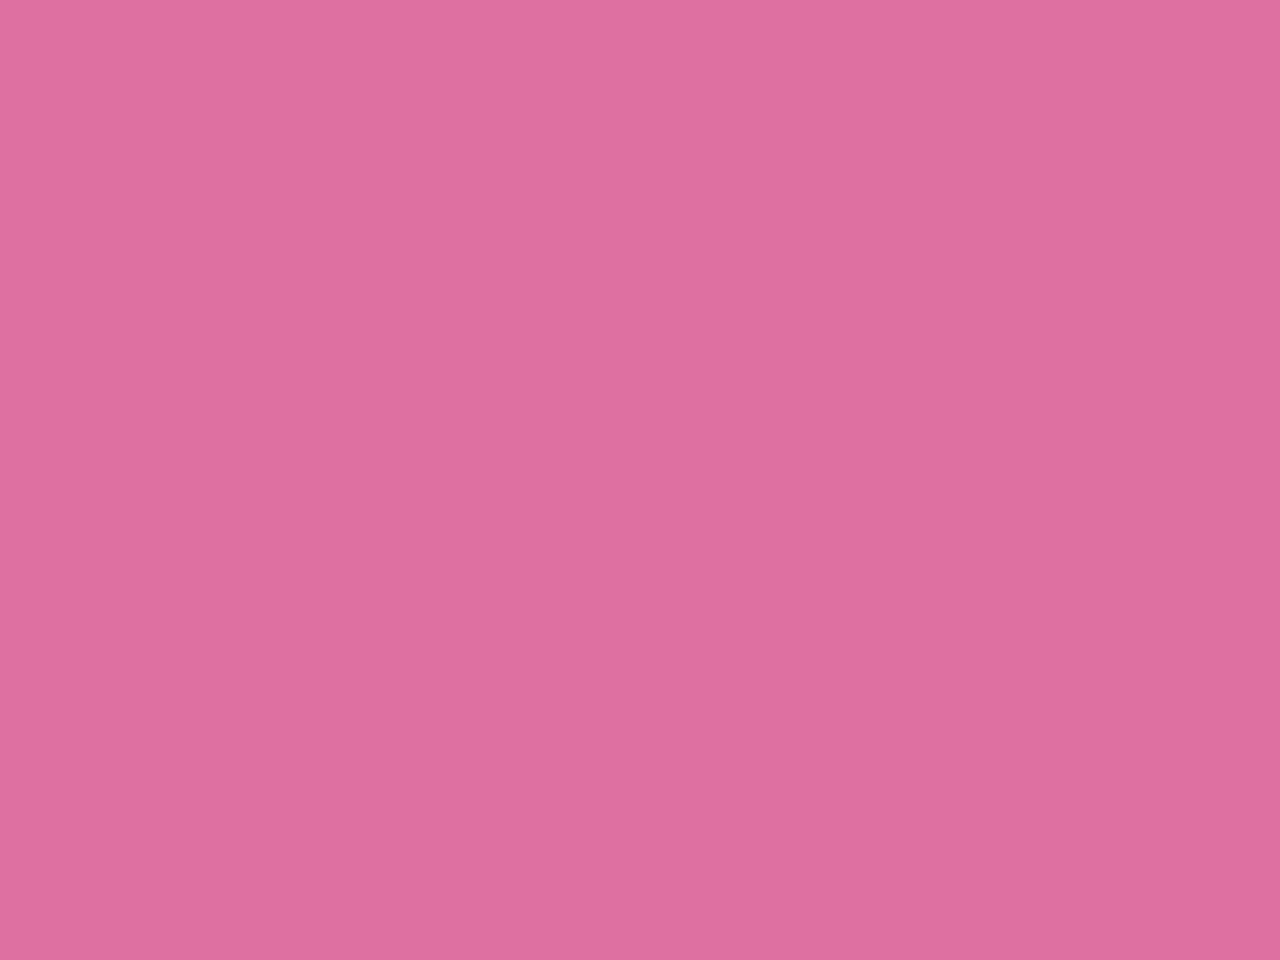 1280x960 Thulian Pink Solid Color Background